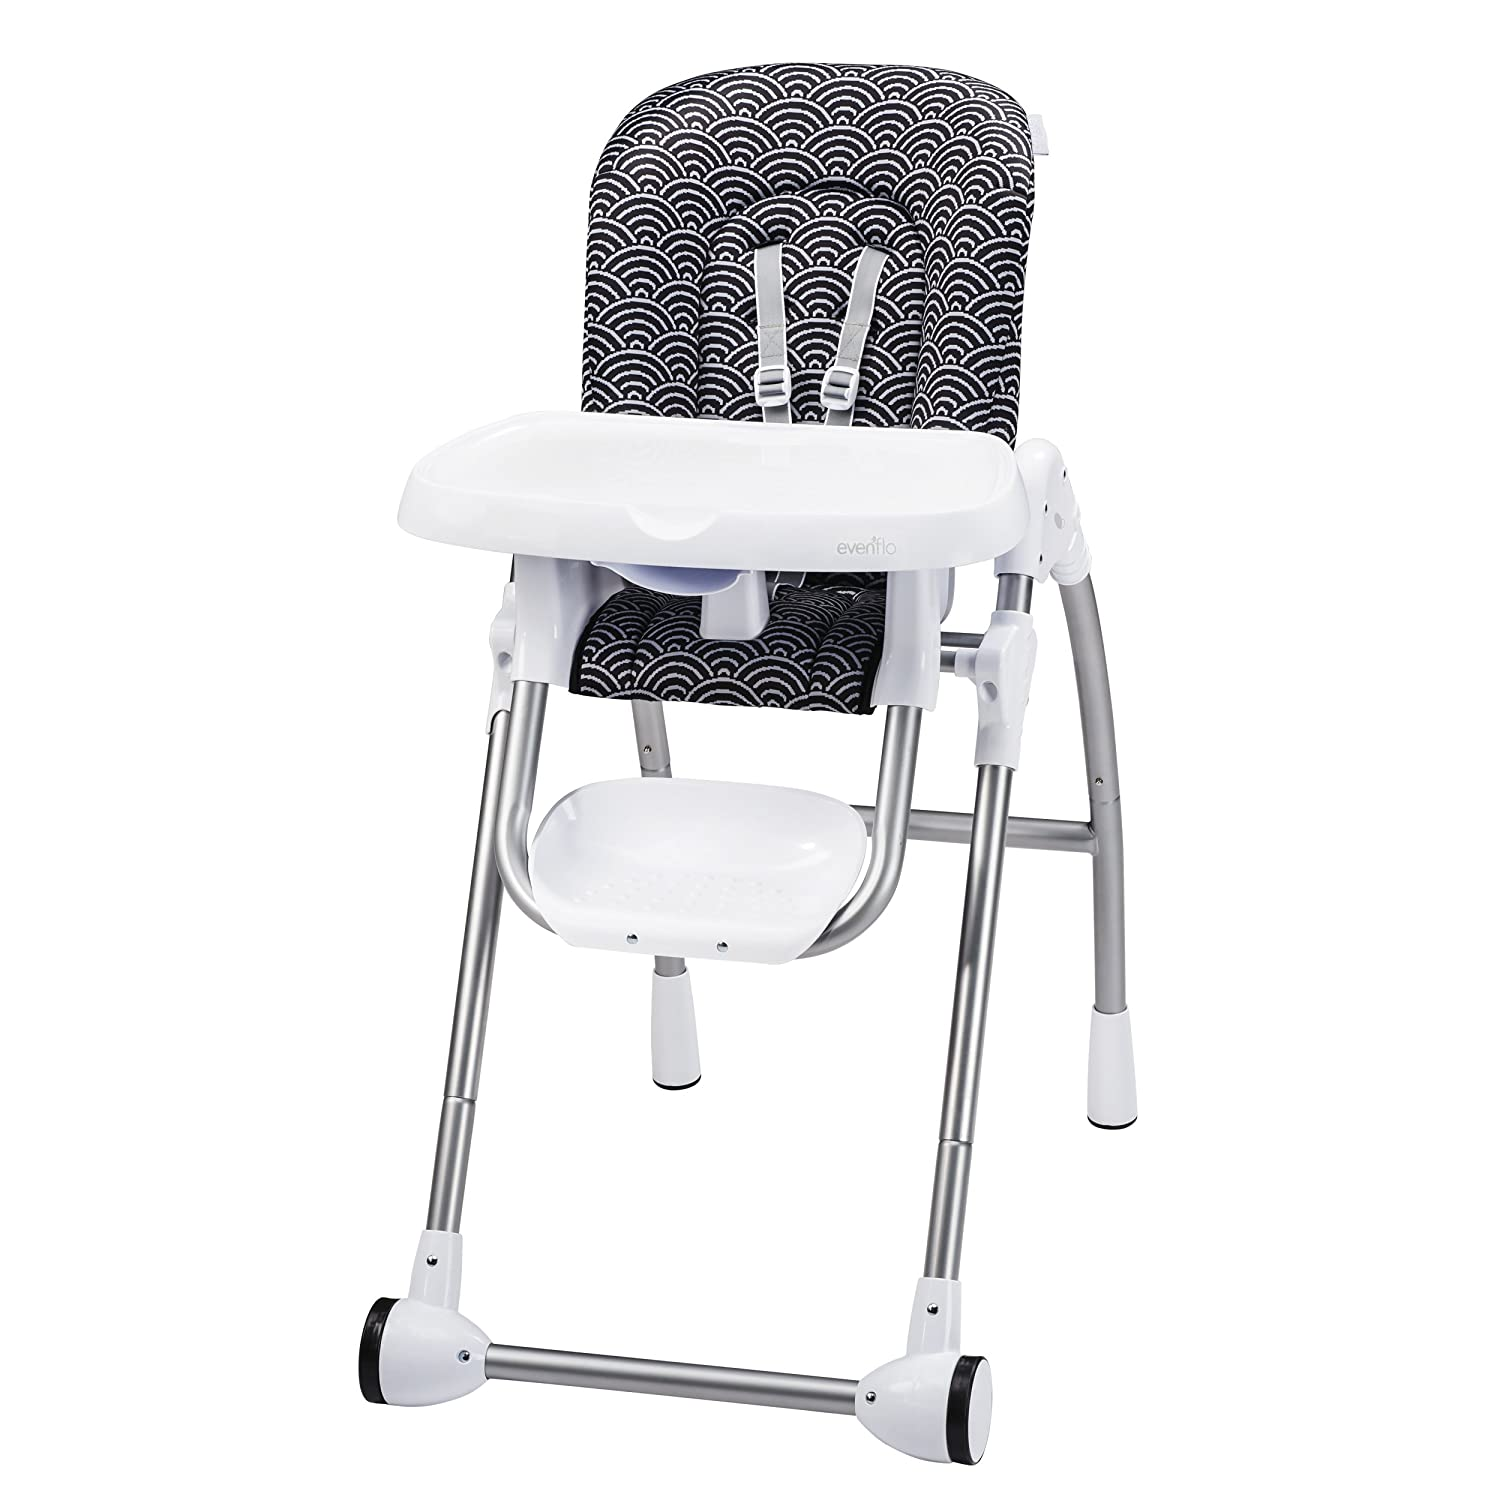 evenflo modern 200 high chair guidecraft table and chairs top rated for babies 2015